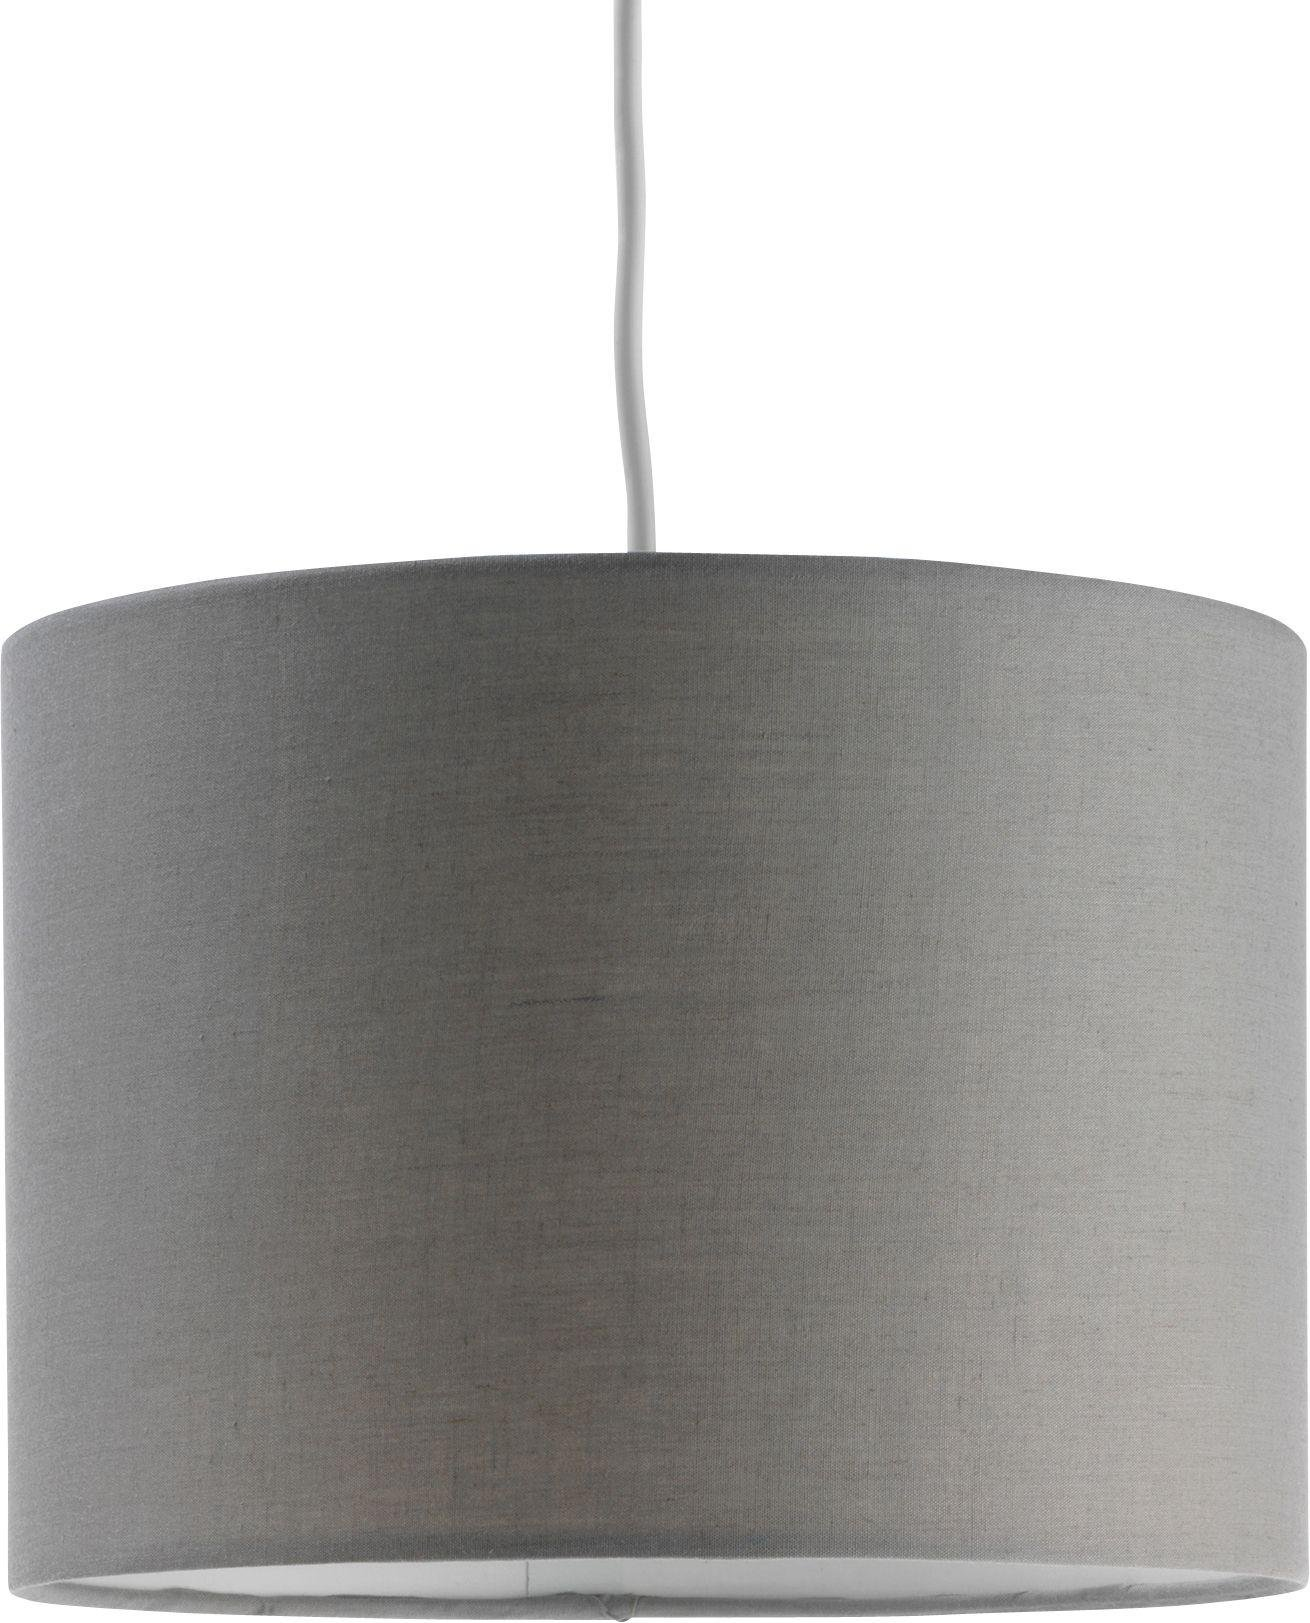 ColourMatch Fabric Light Shade   Flint Grey